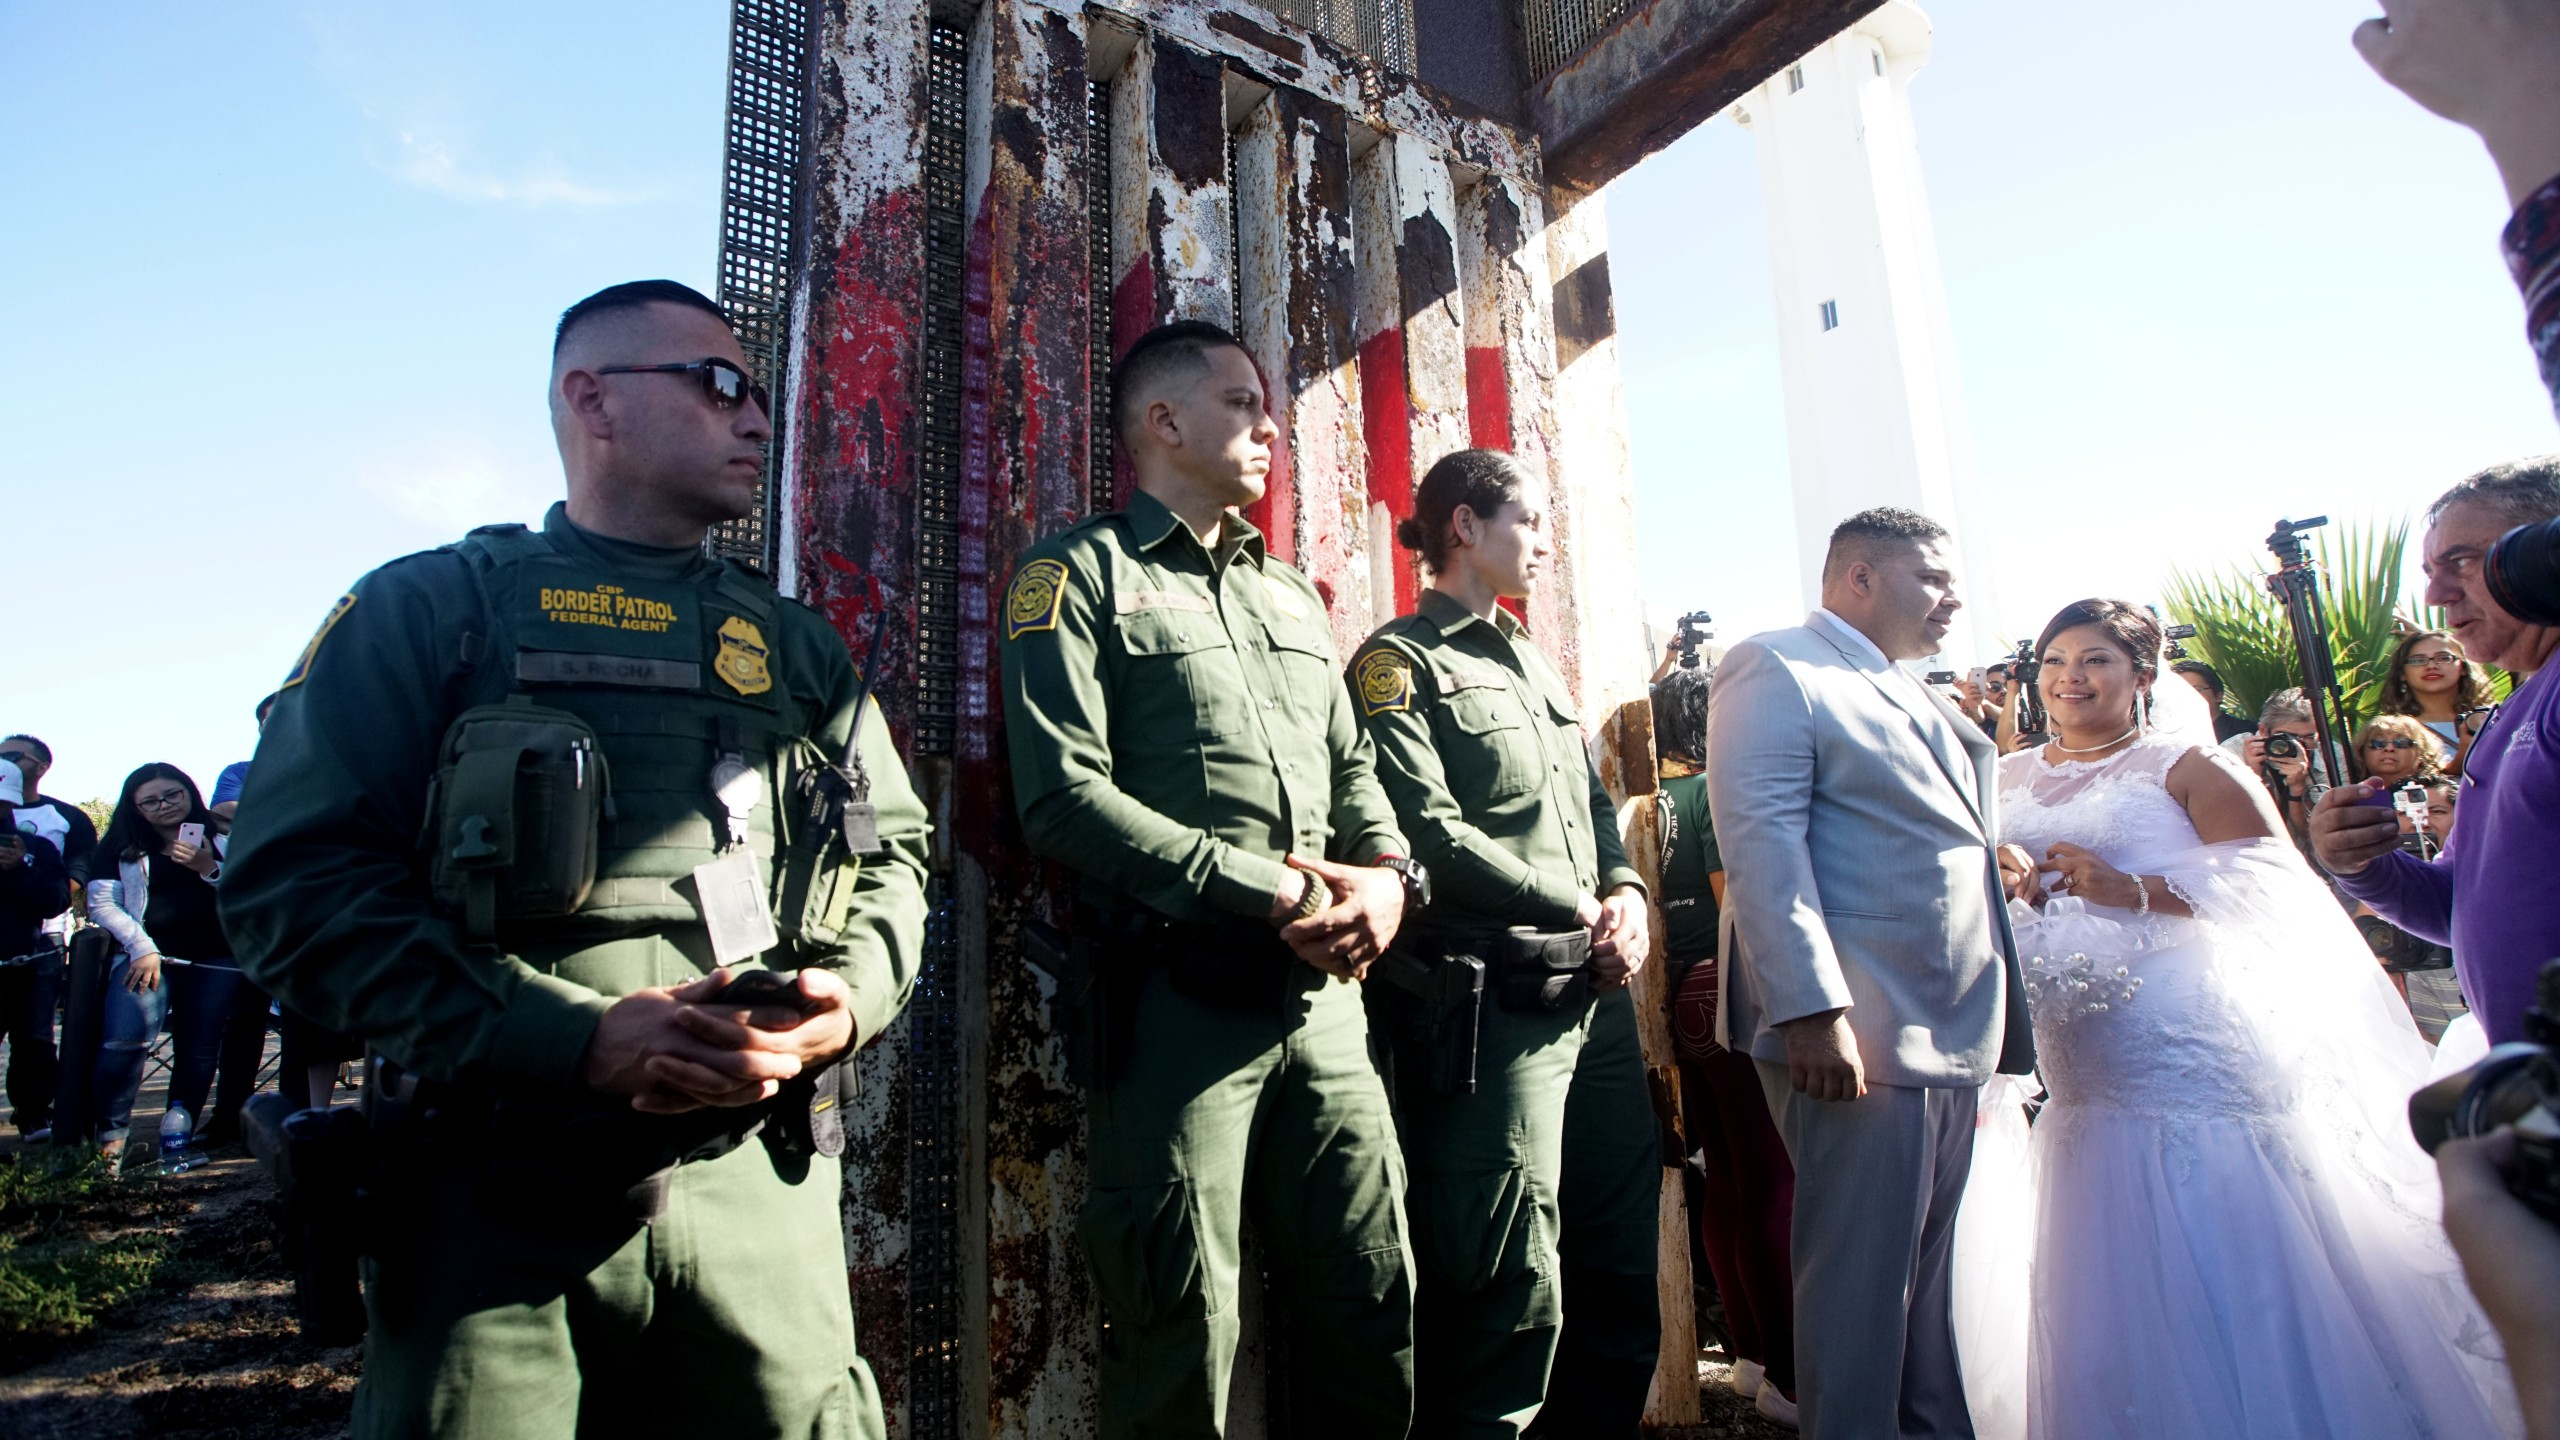 Park On U.S. - Mexican Border Opens Border Fence For Families And Friends To Visit Each Other_602787